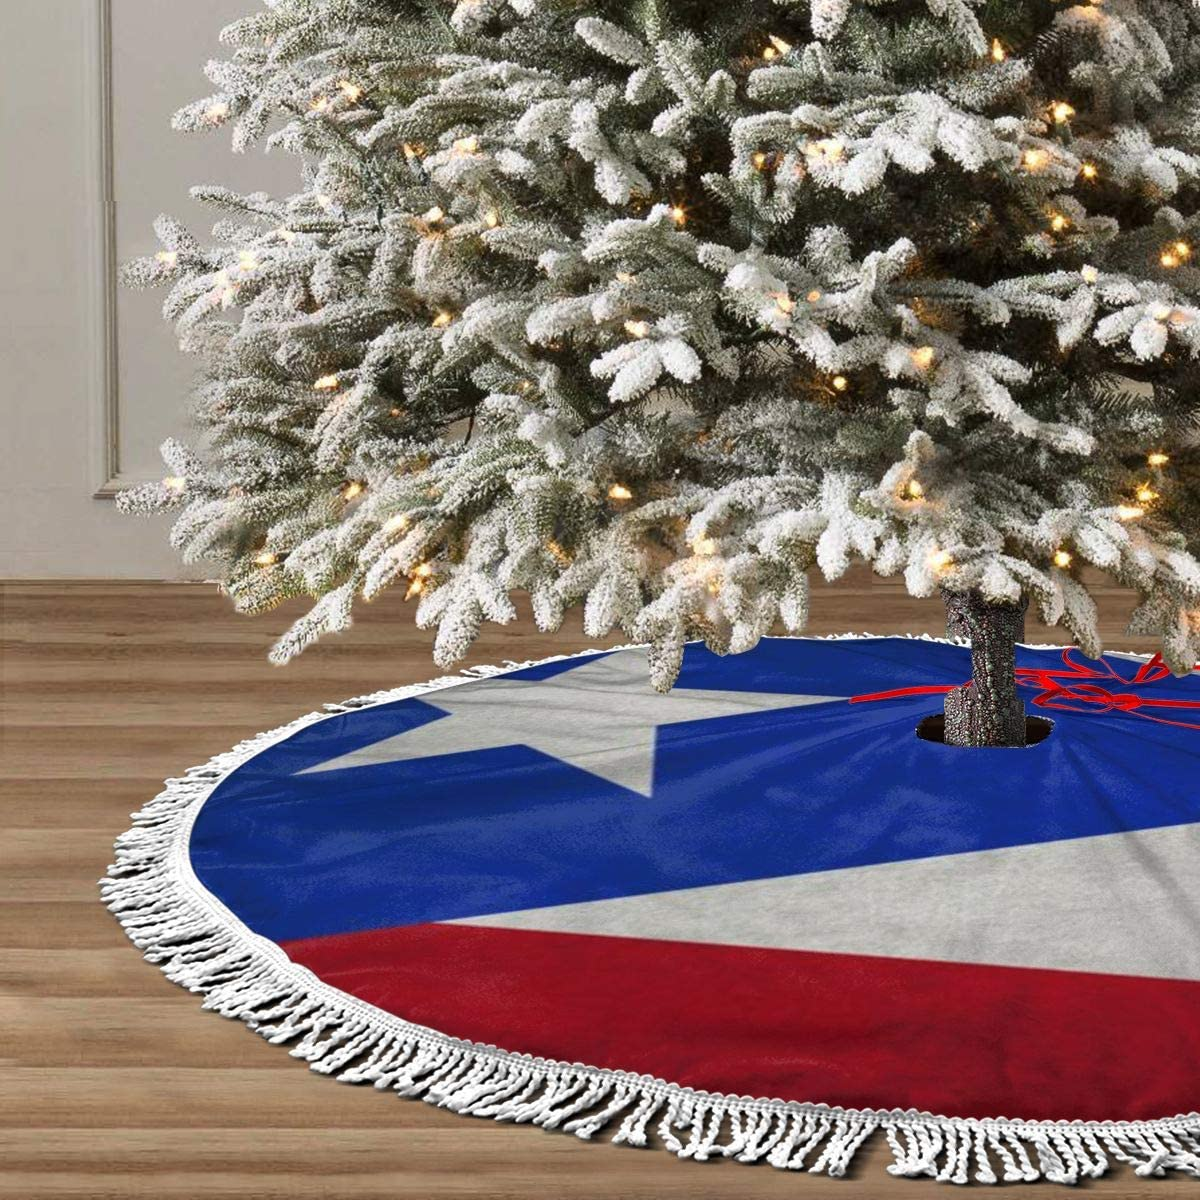 "GHYGTY Christmas Tree Skirt 36"" Inch Puerto Rico Flag Xmas Tree Skirt Mat with White Tassel for Party Holiday, Tree Skirt Christmas Decorations"